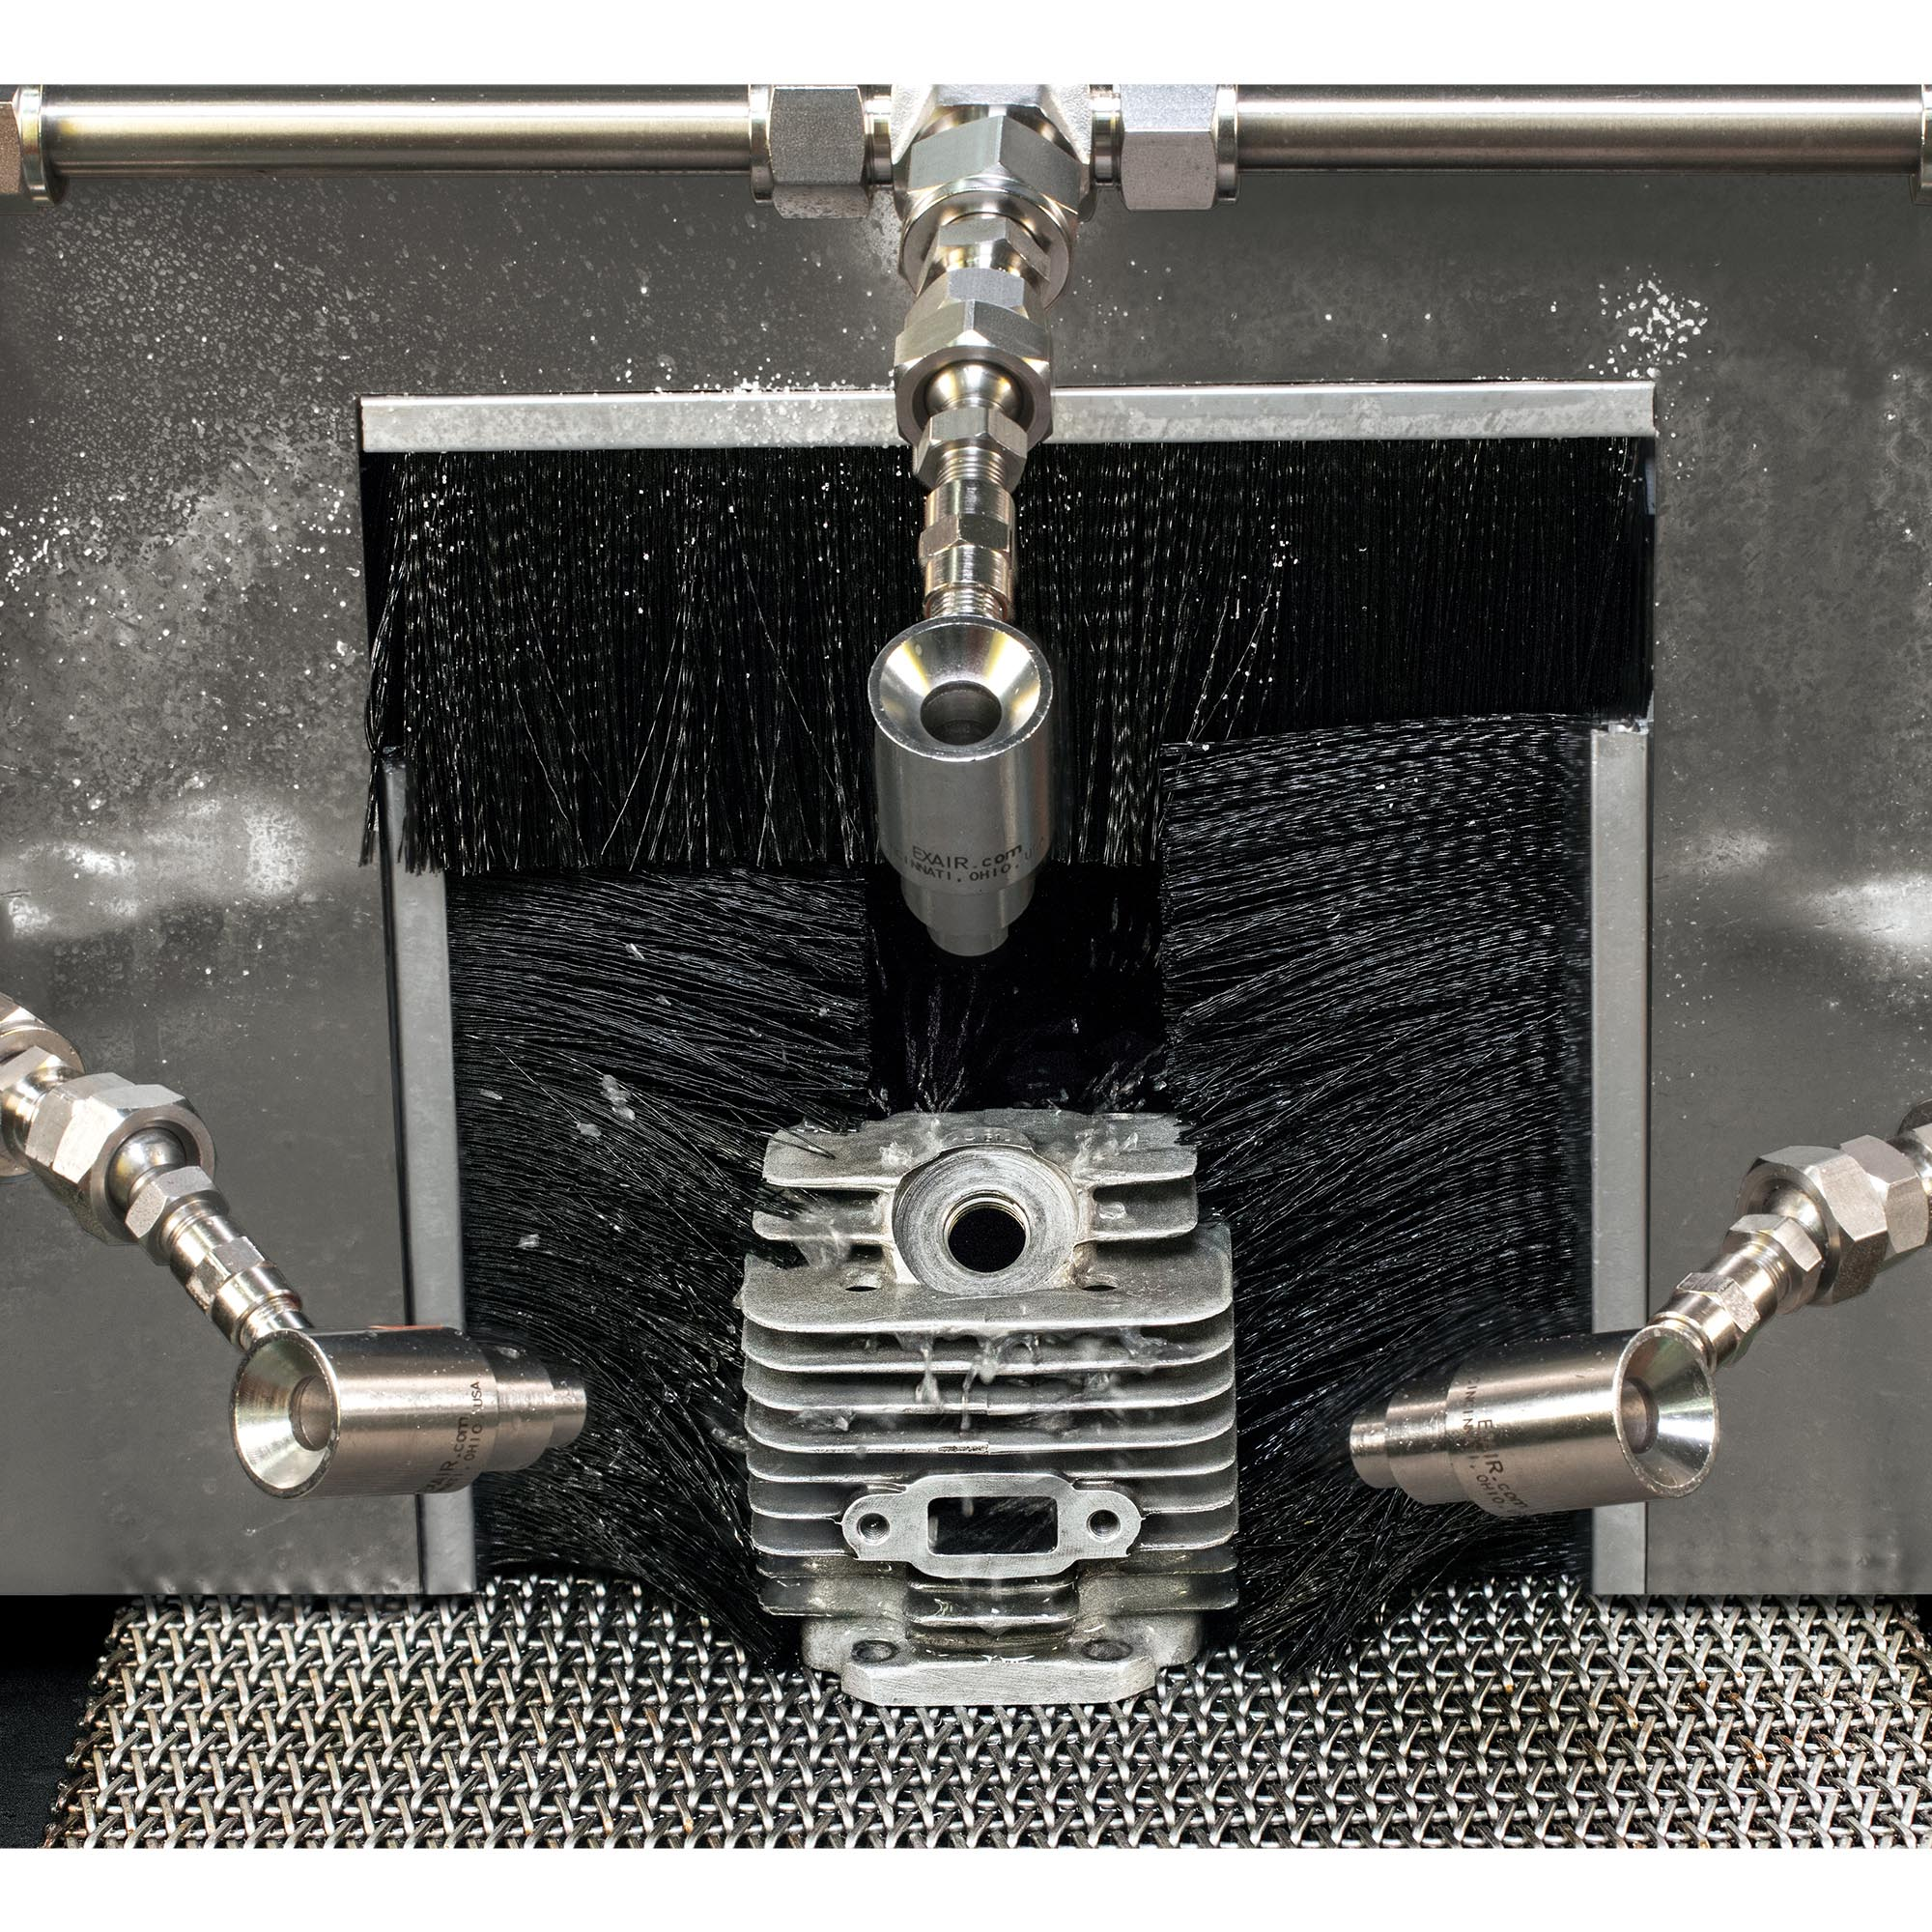 A combination of Model 6013 High Velocity Air Jets dry this chainsaw cylinder head.